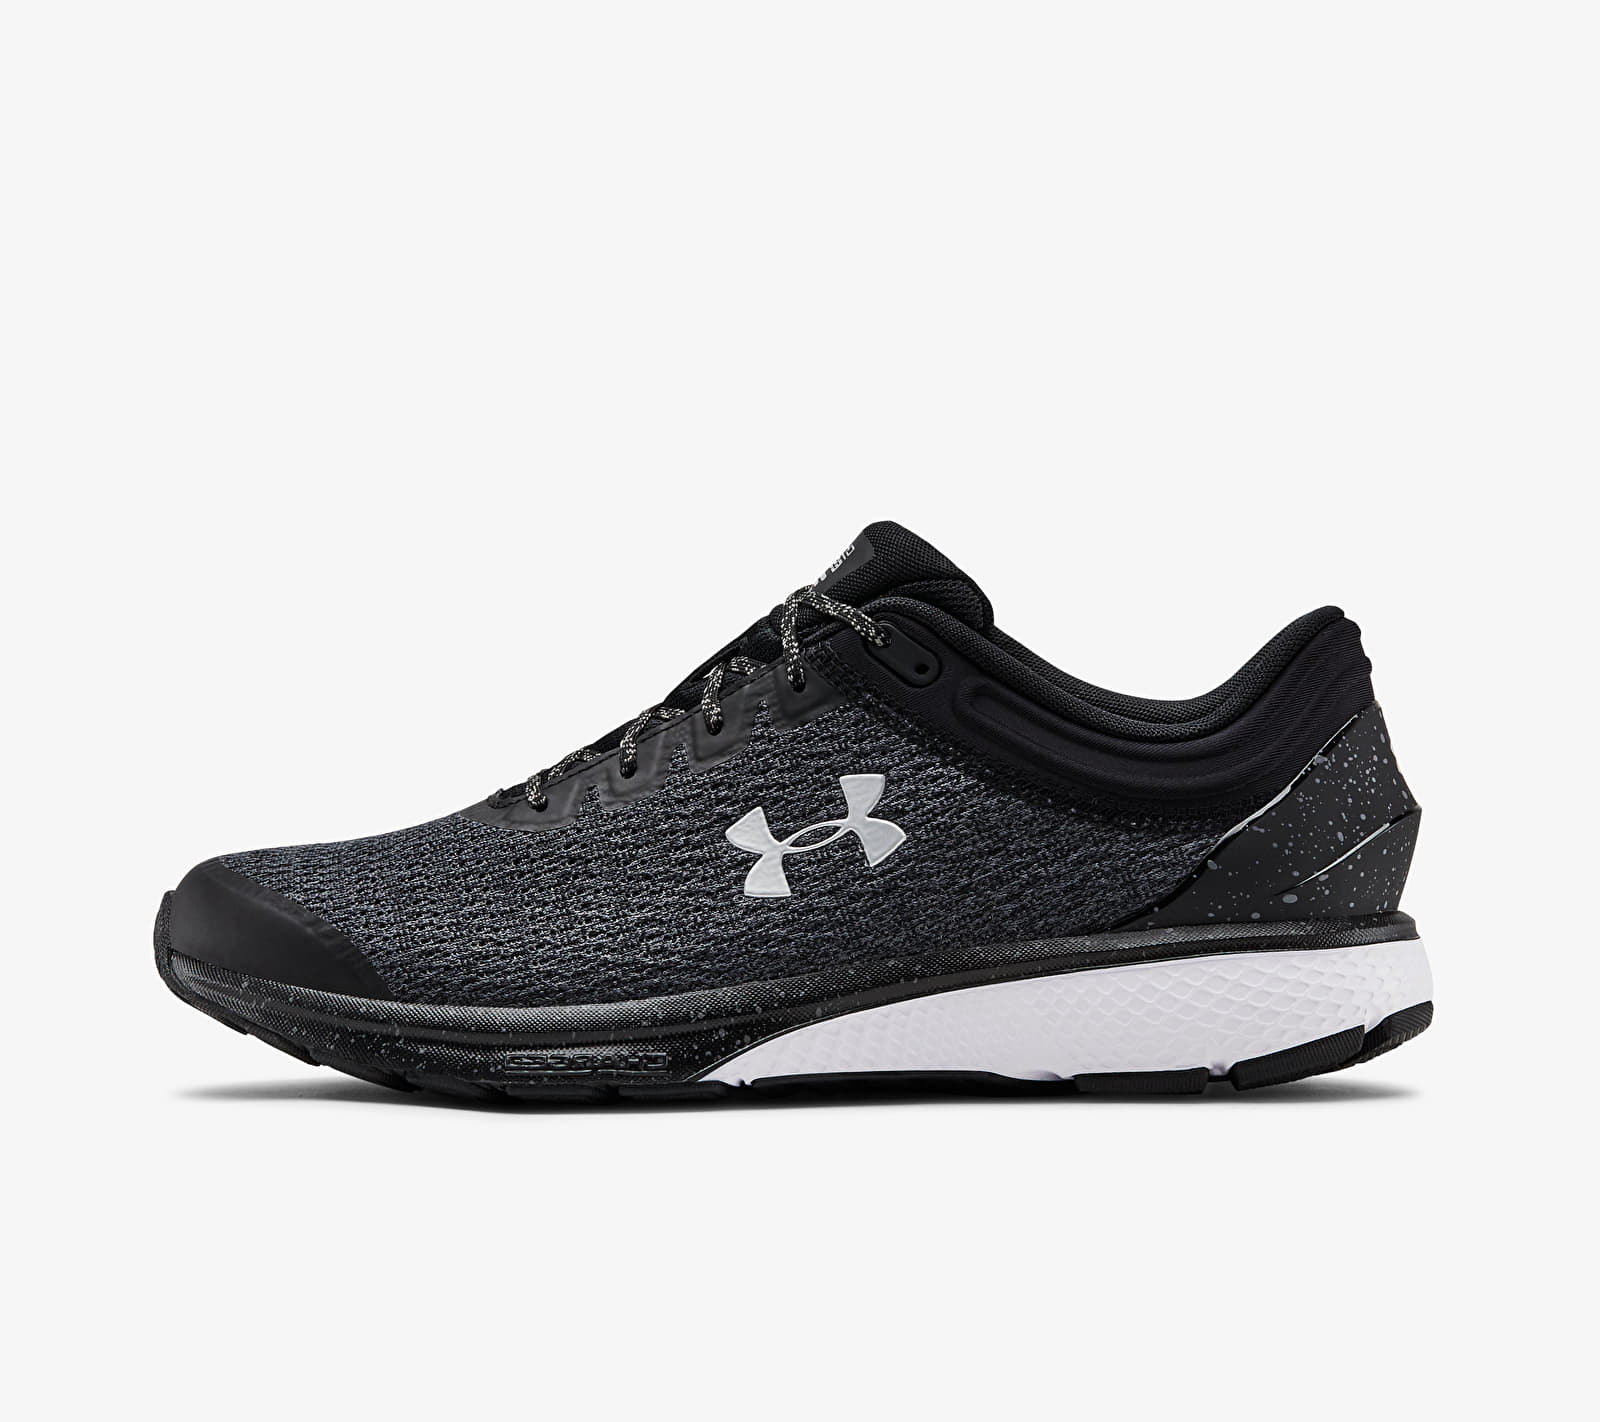 Under Armour Charged Escape 3 Black/ White/ Metallic Silver EUR 42.5